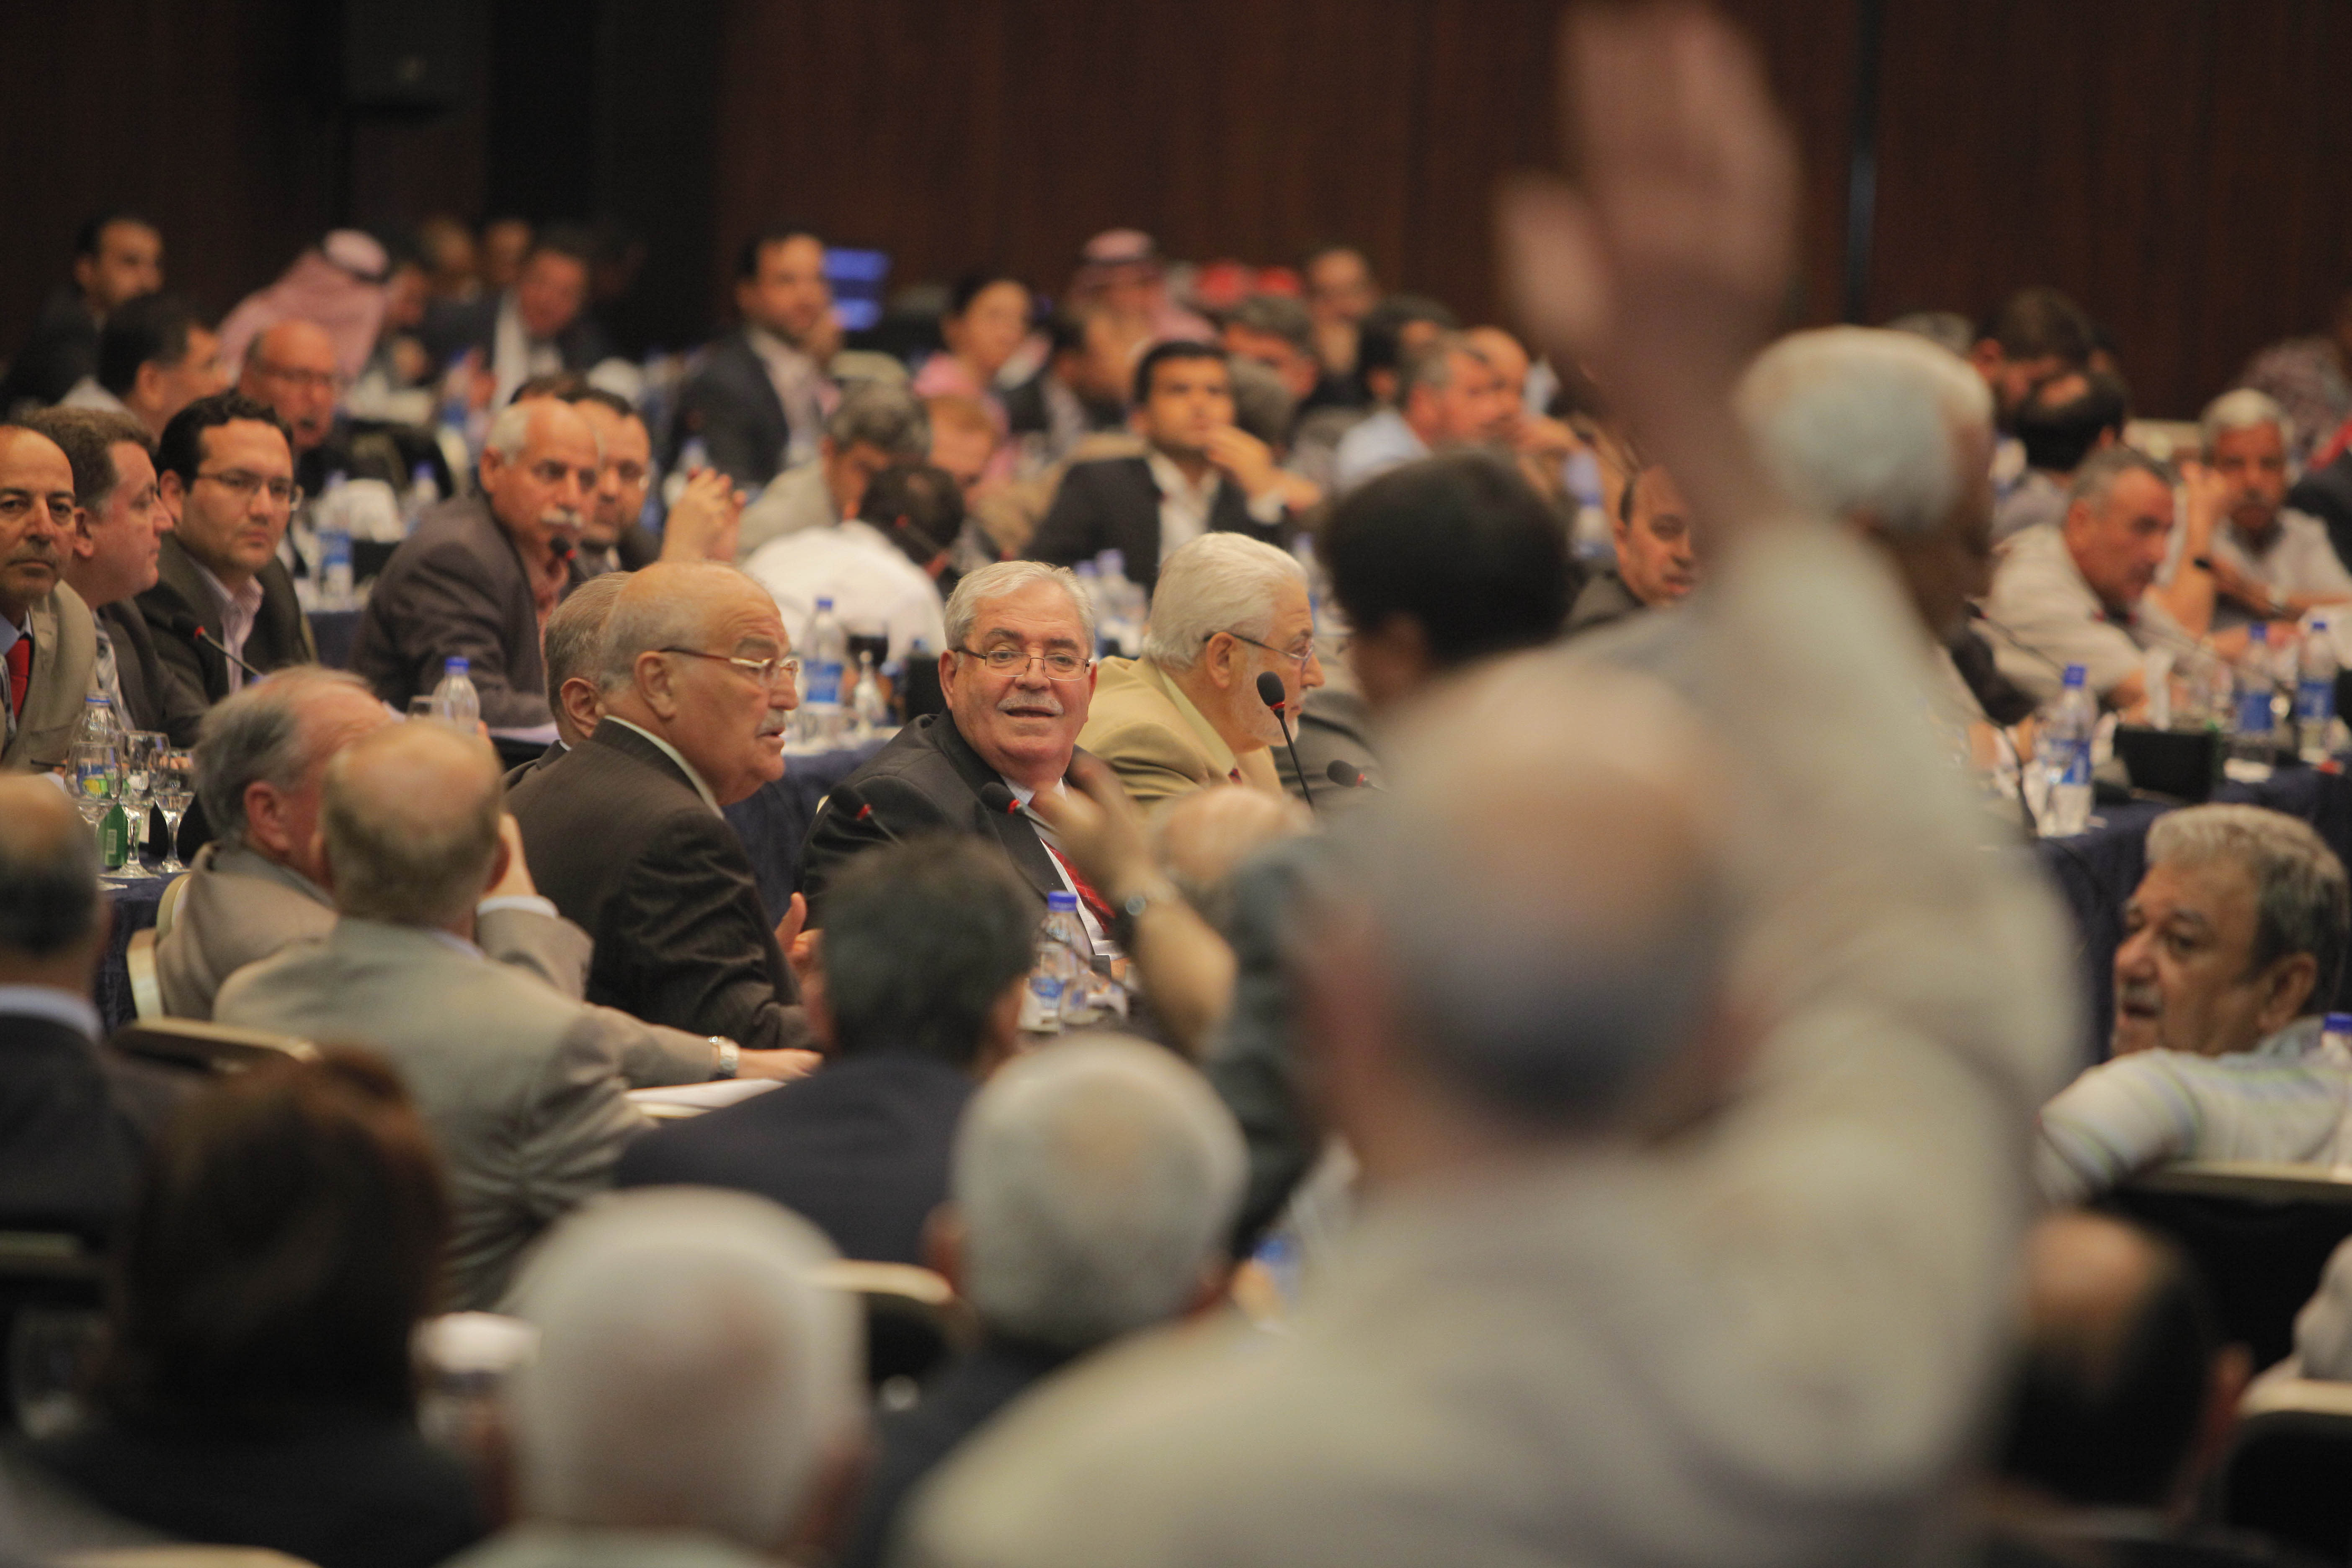 Exiled Syrian opposition figures meet in New Cairo, Egypt, Tuesday, July 3, 2012. The Arab League chief urged exiled Syrian opposition figures to unite at a meeting as a new Western effort to force President Bashar Assad from power faltered.(AP Photo/Amr Nabil)